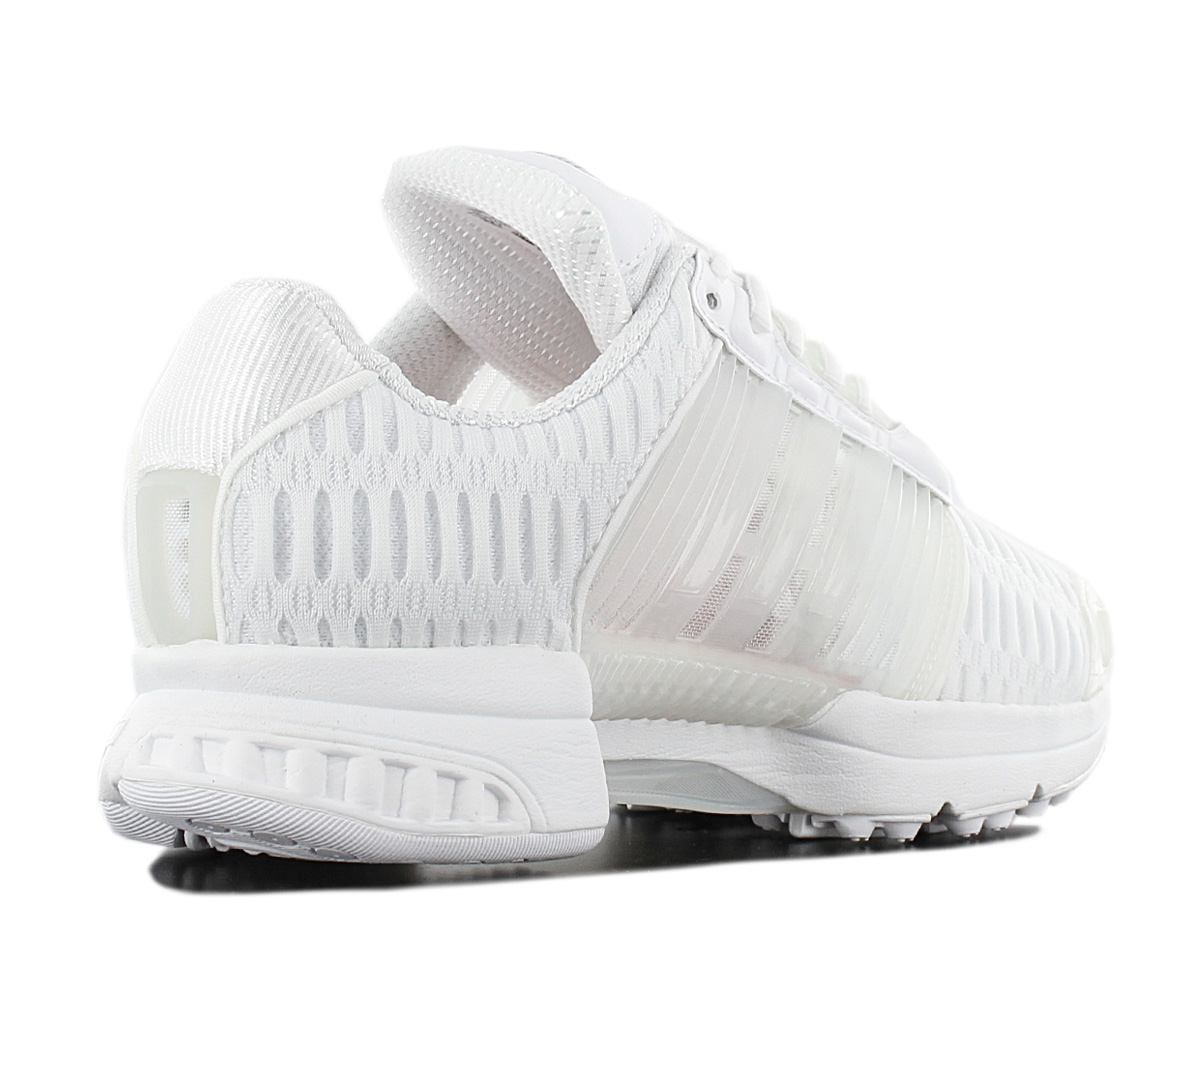 Details about Adidas Climacool 1 Womens Shoes Sport Shoes Running Shoes S75927 Sneakers NEW show original title